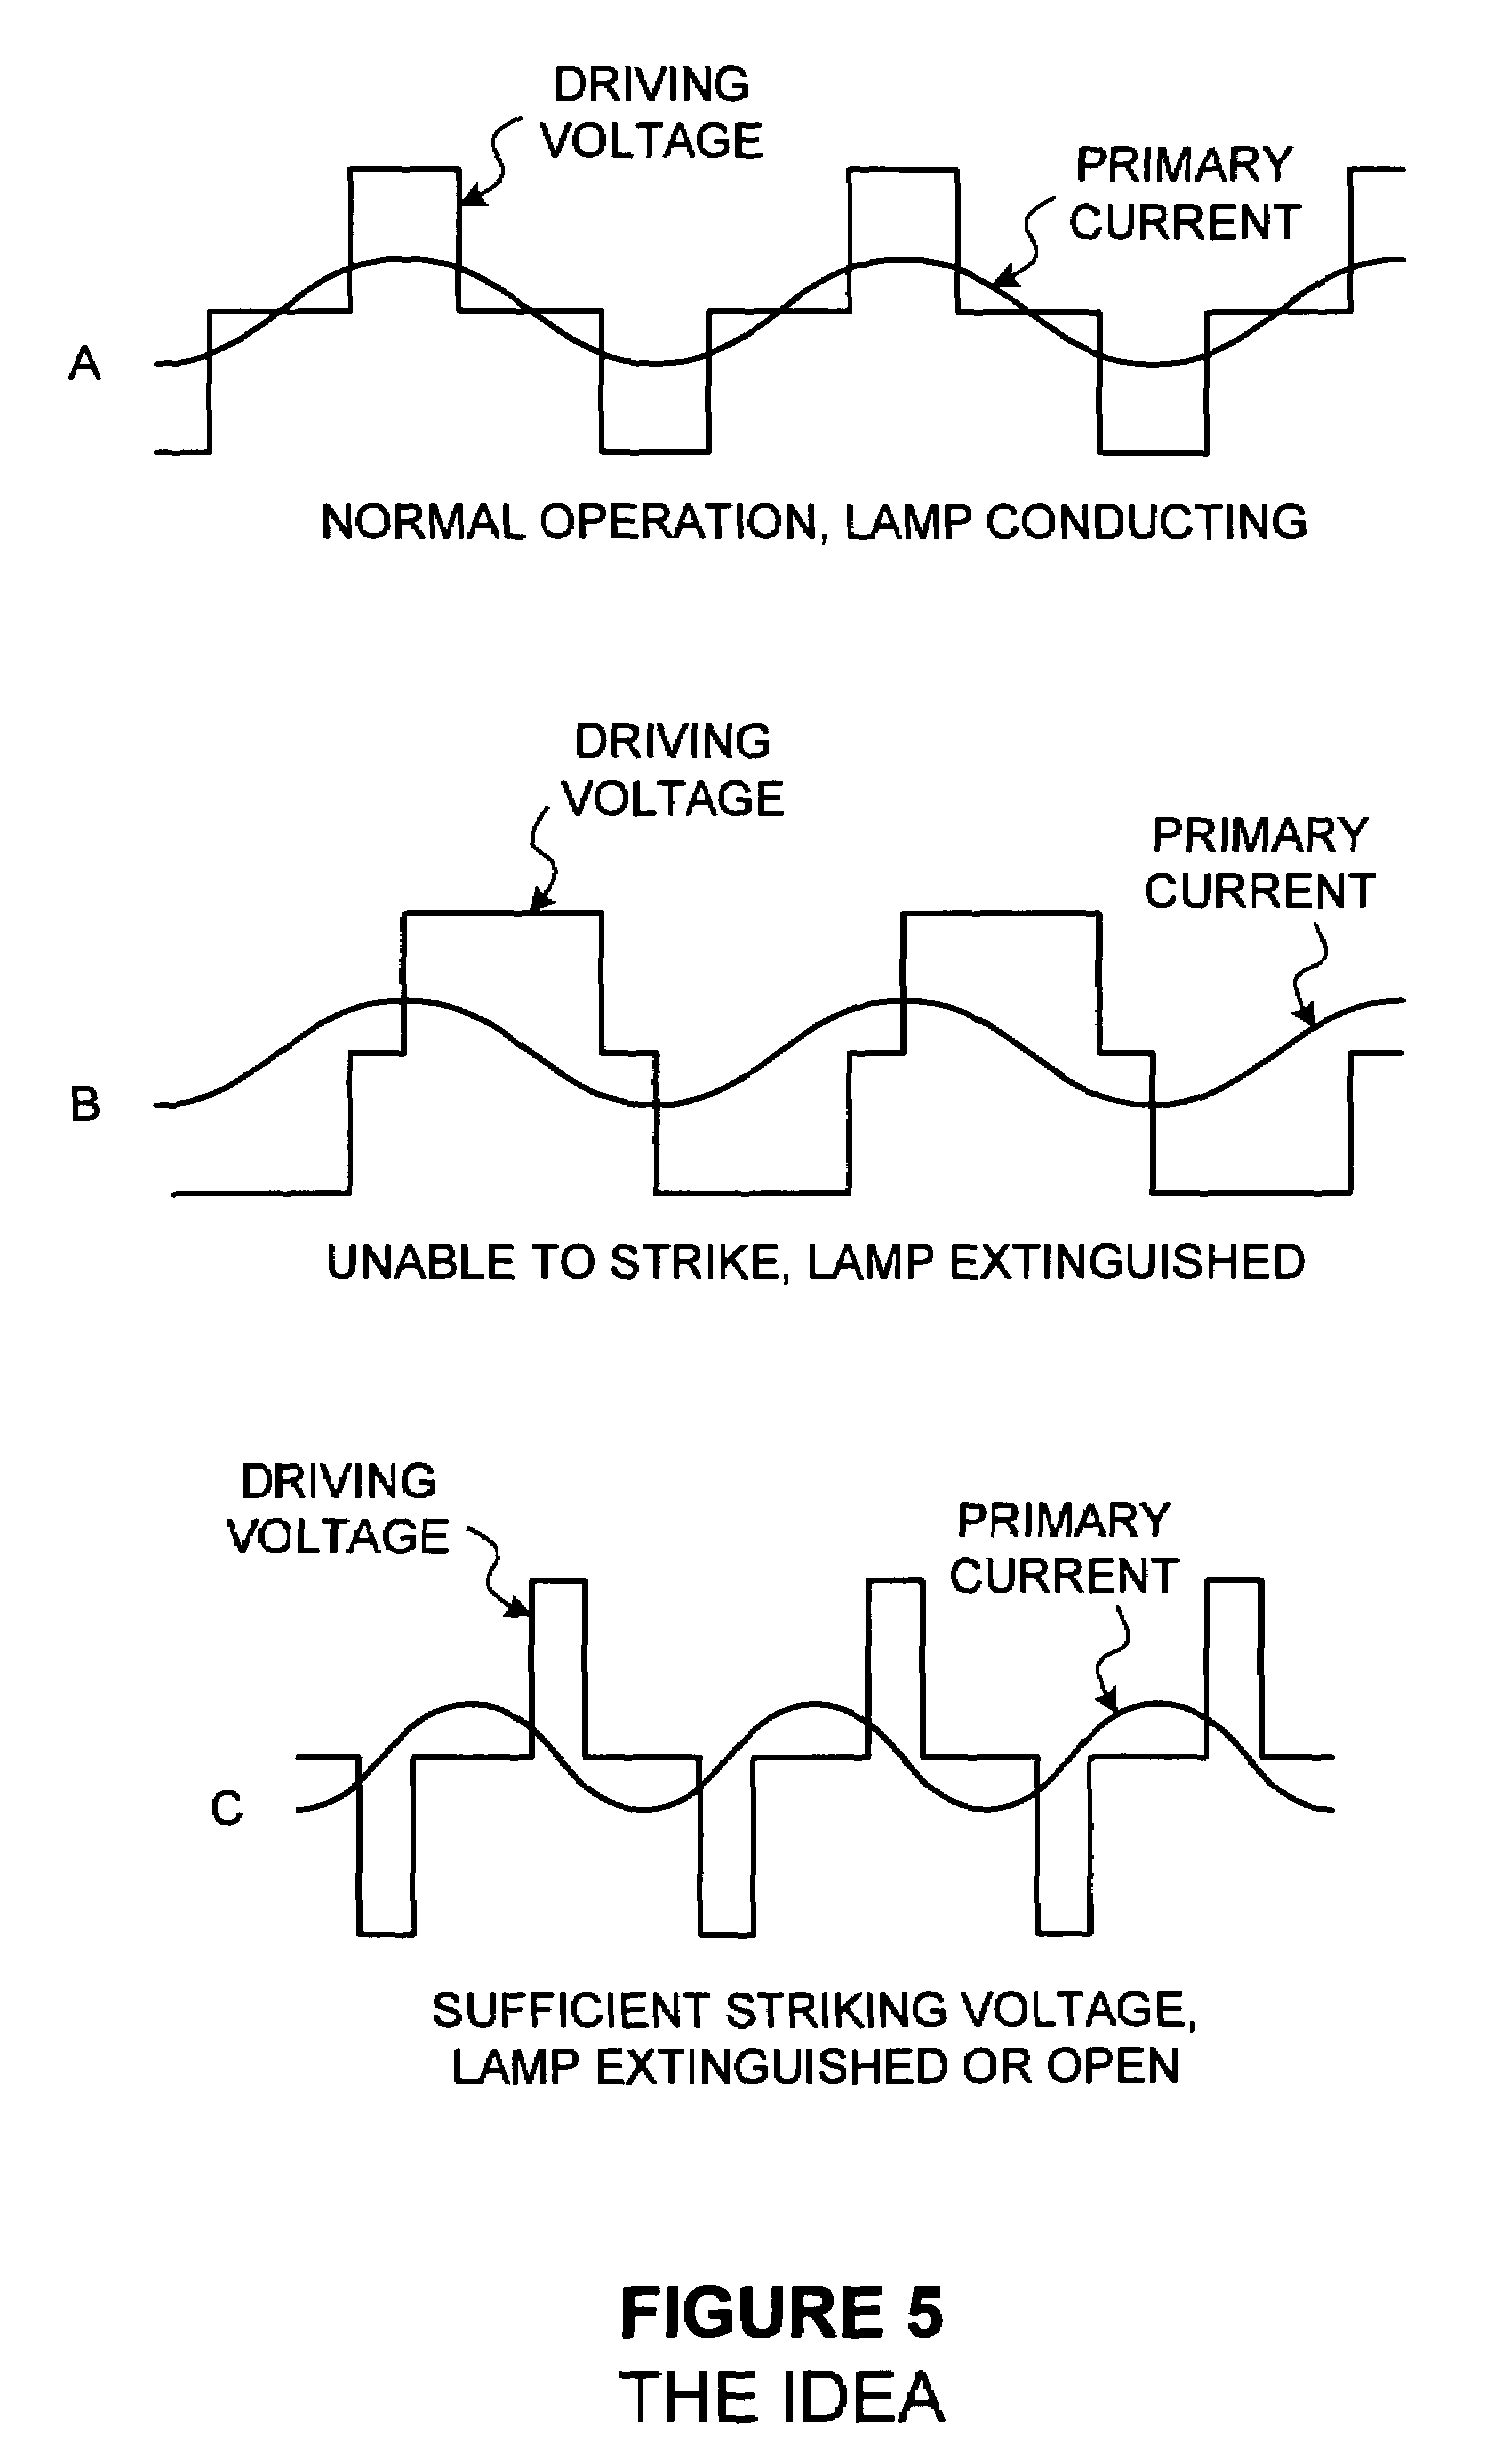 transformer primary and secondary voltage relationship